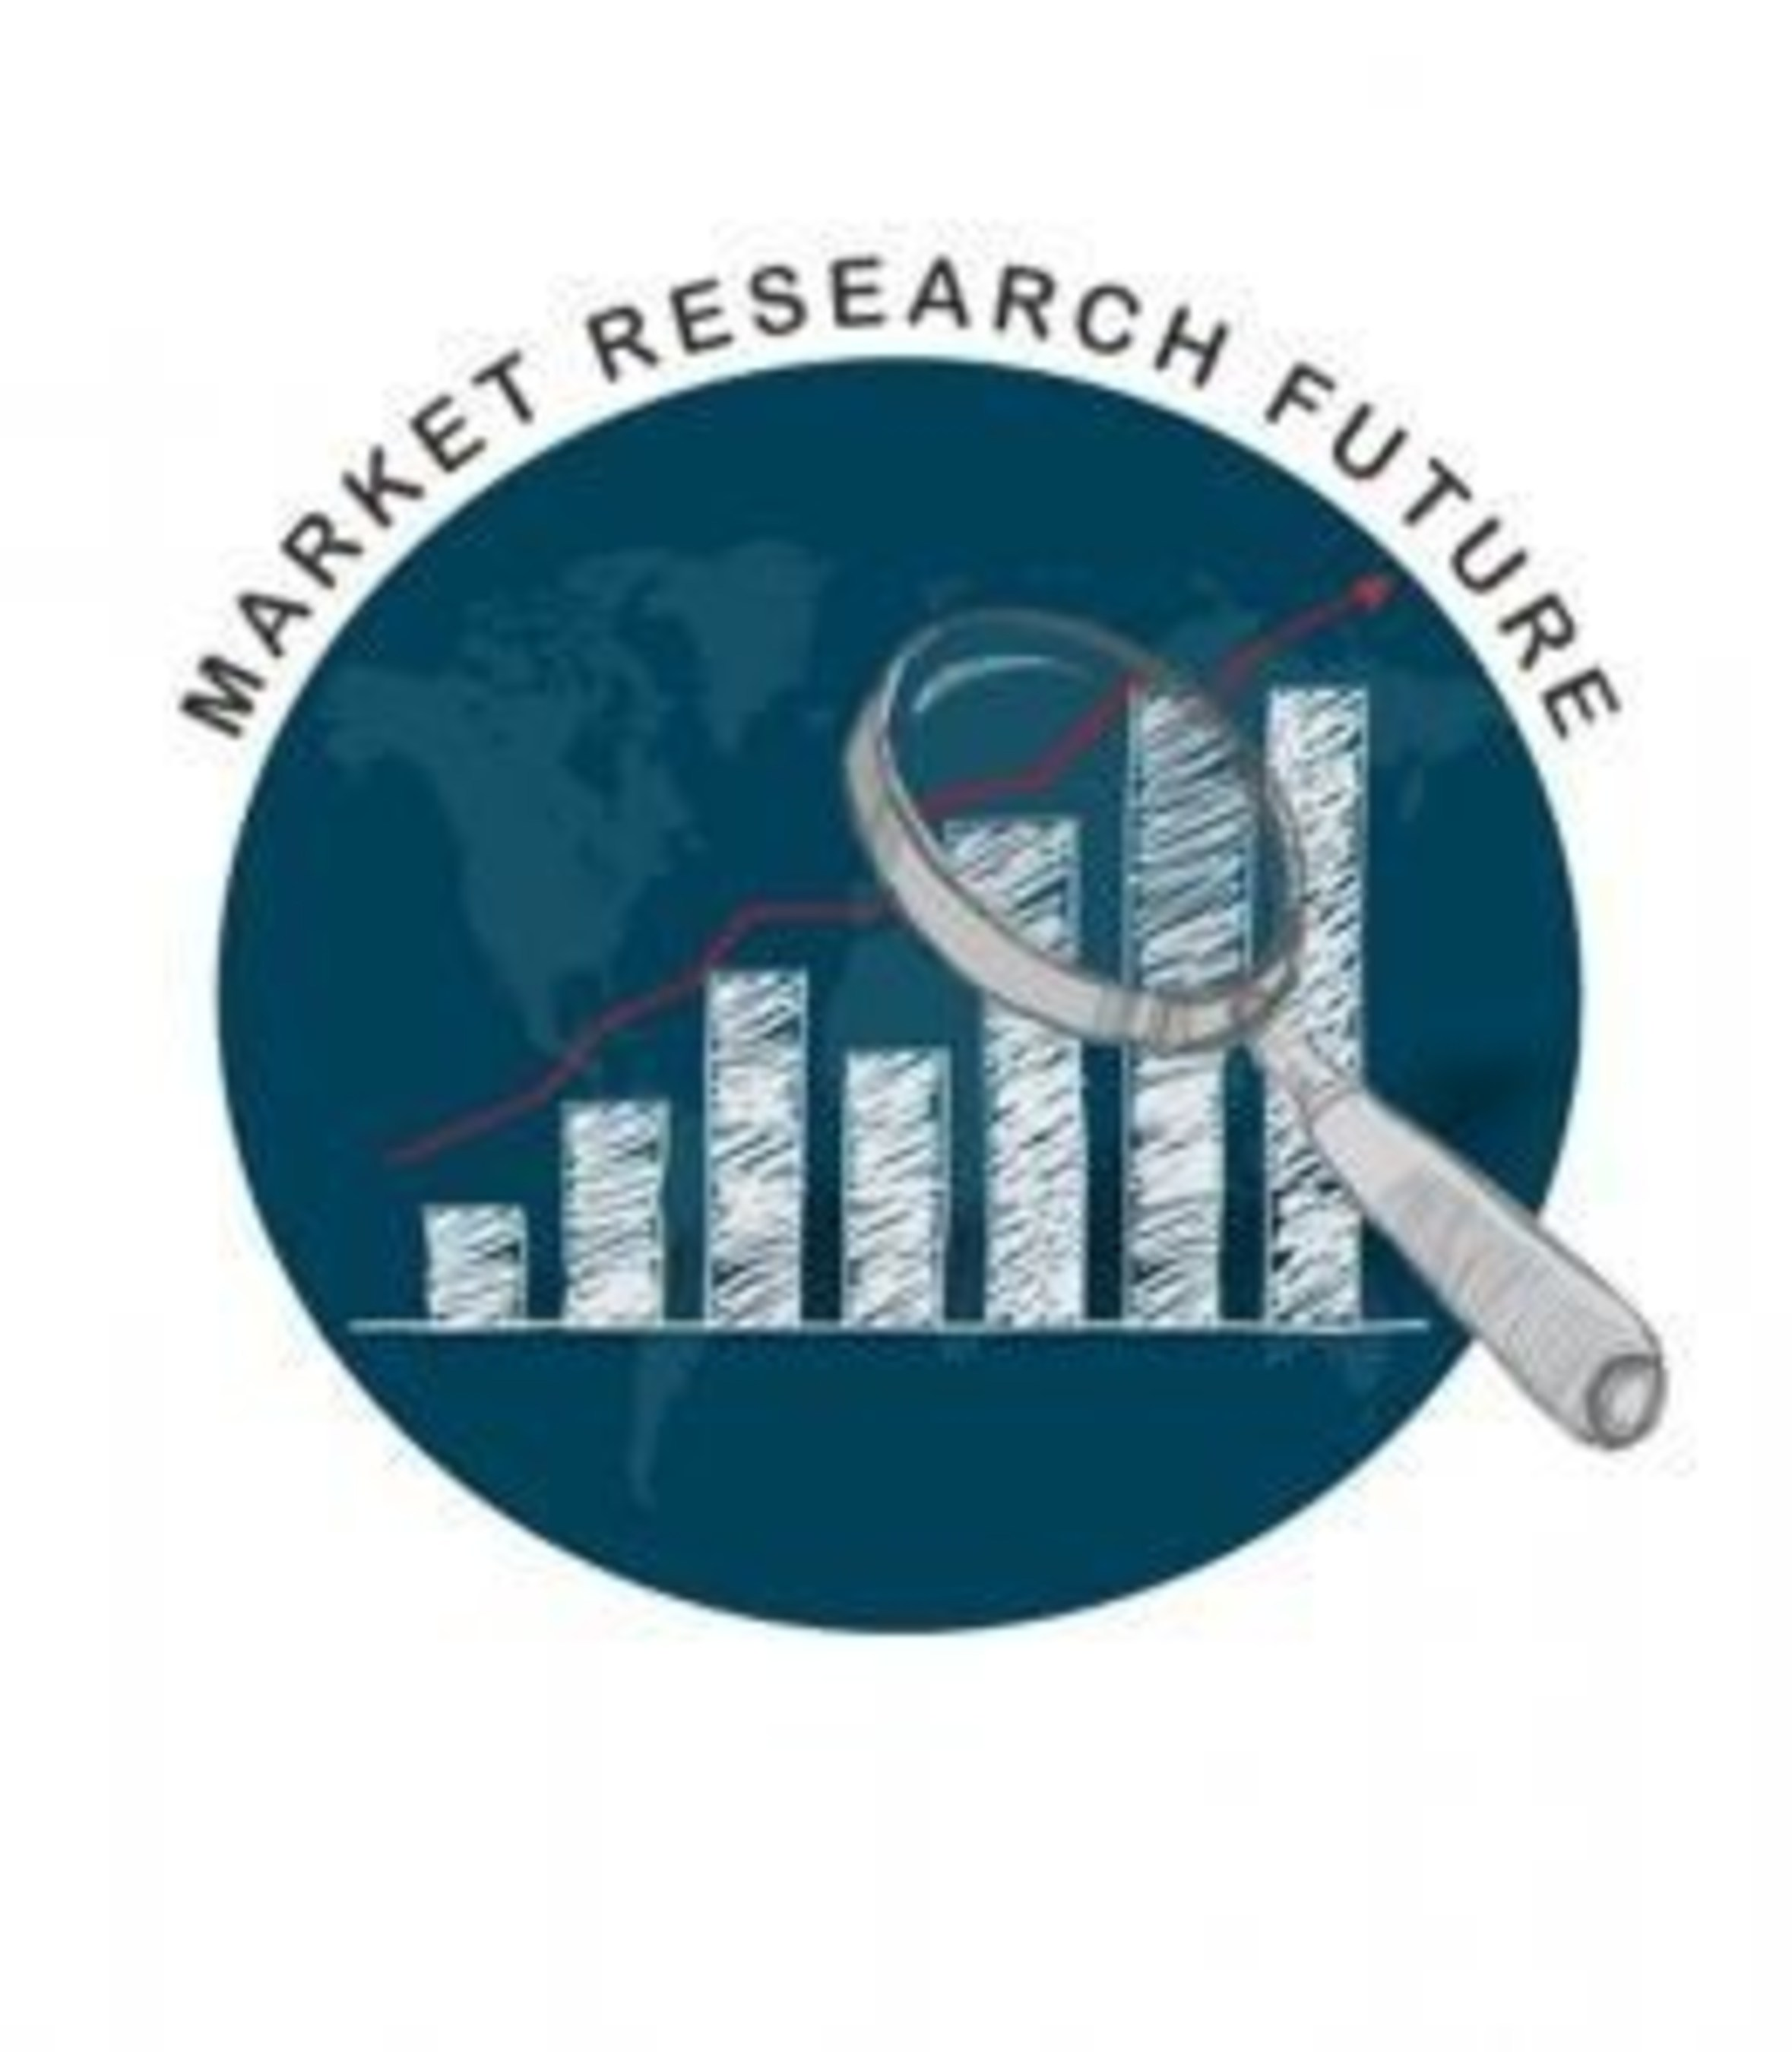 Cyber Security Market: Global Technology, Industry Development, Trends, Market Opportunities and Research Report to 2027